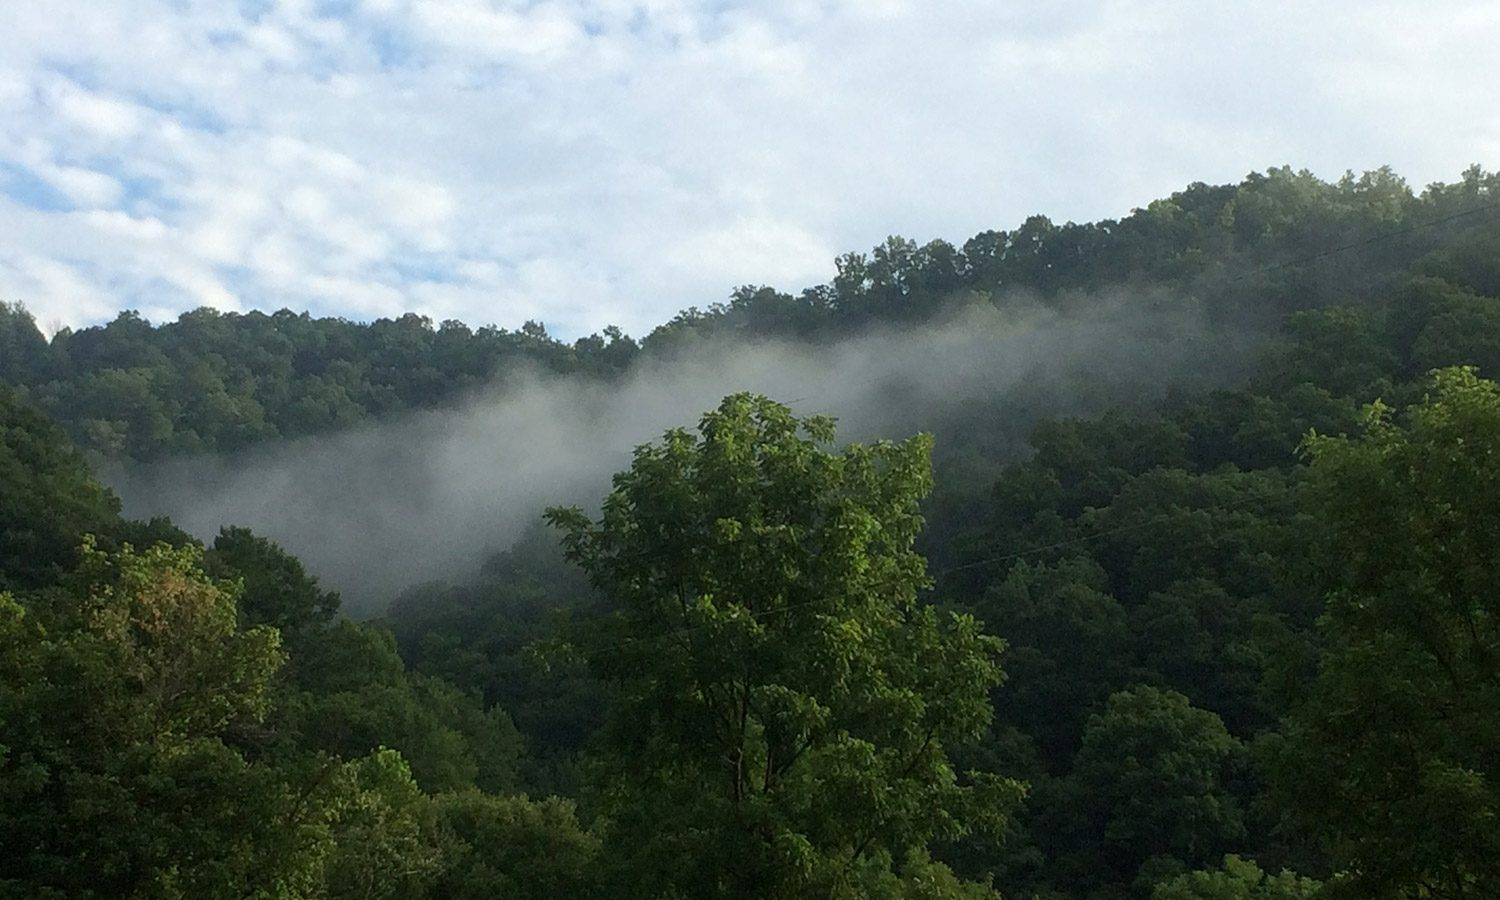 View from Friends Drift Inn Farm, Appalachian Mountains in summer with green foliage and fog